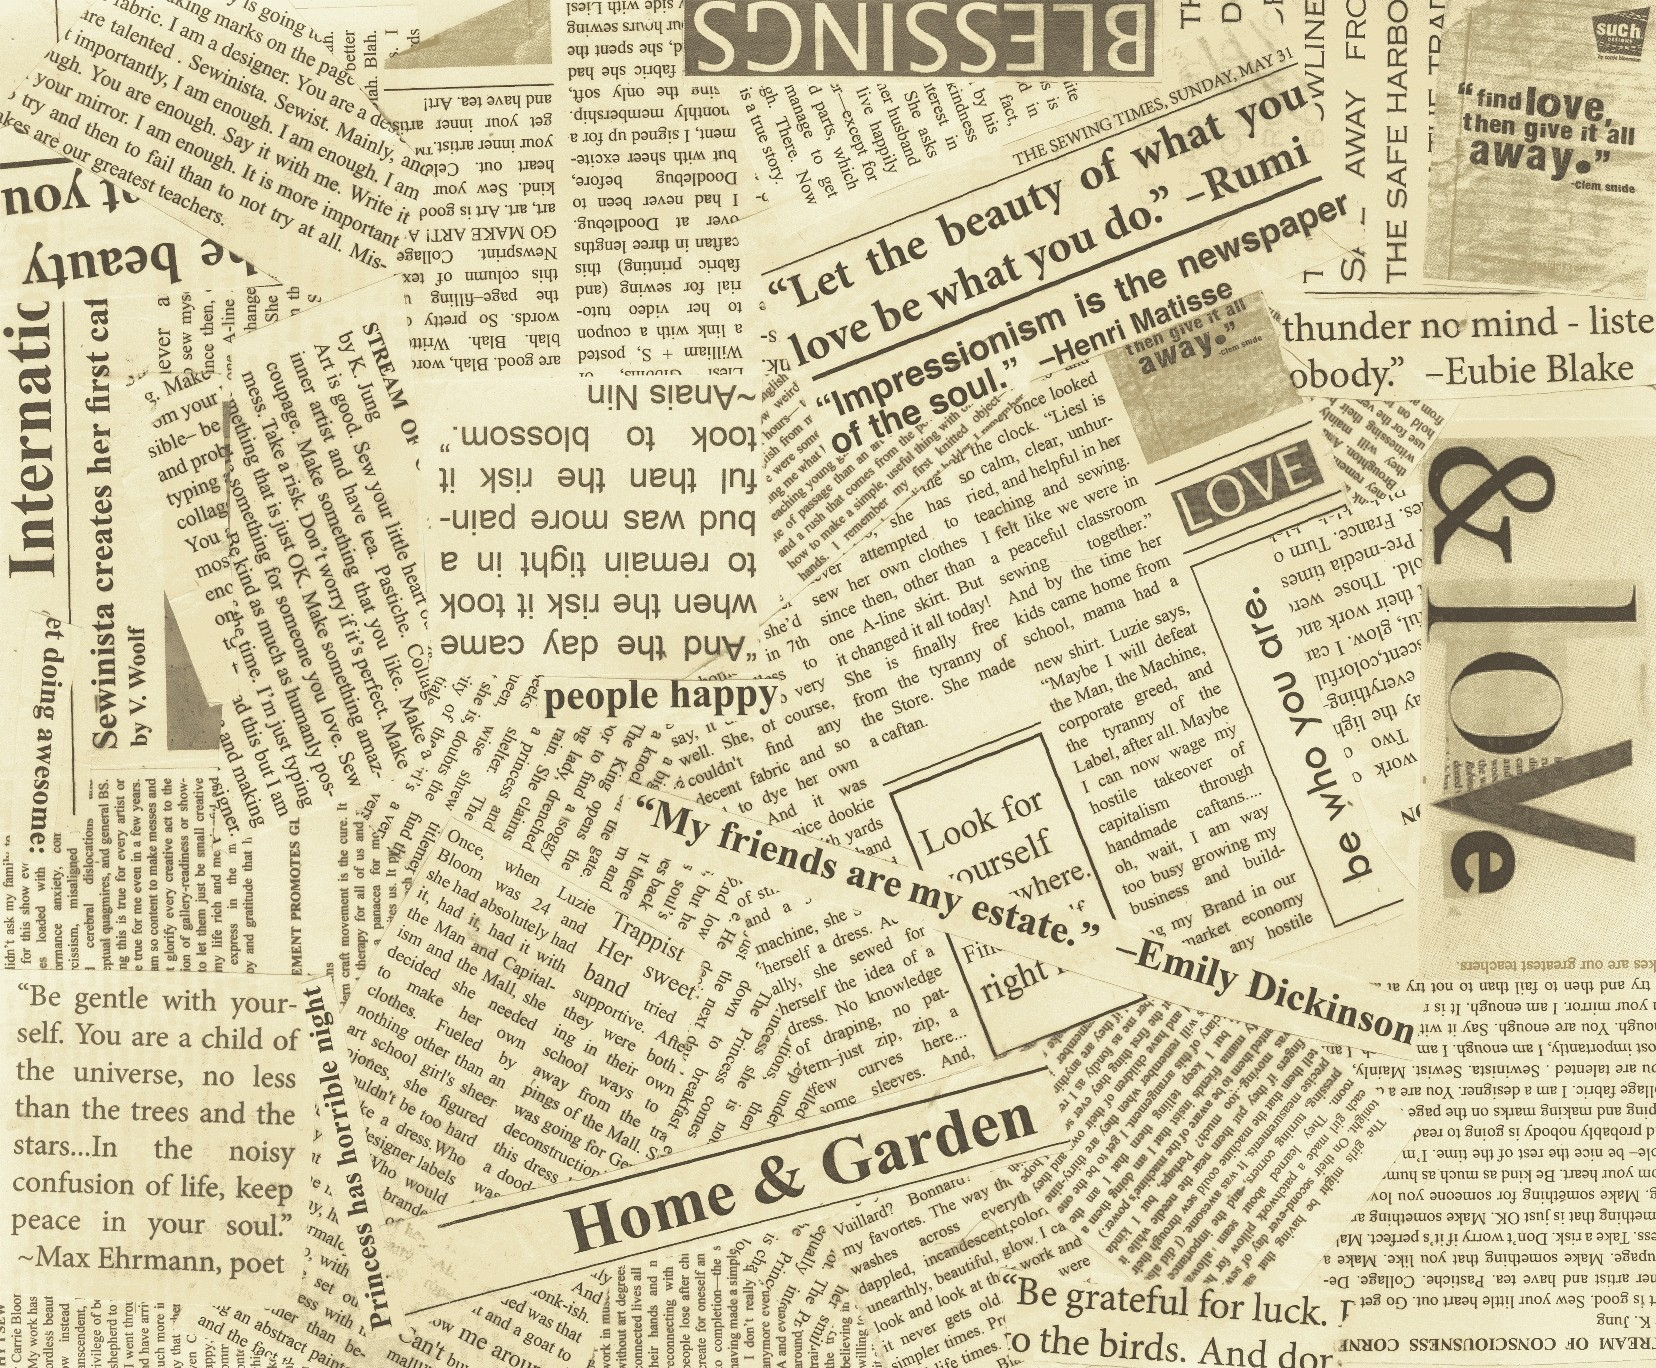 Newspaper Collage Background 36530 2 paperjpg 1656x1368